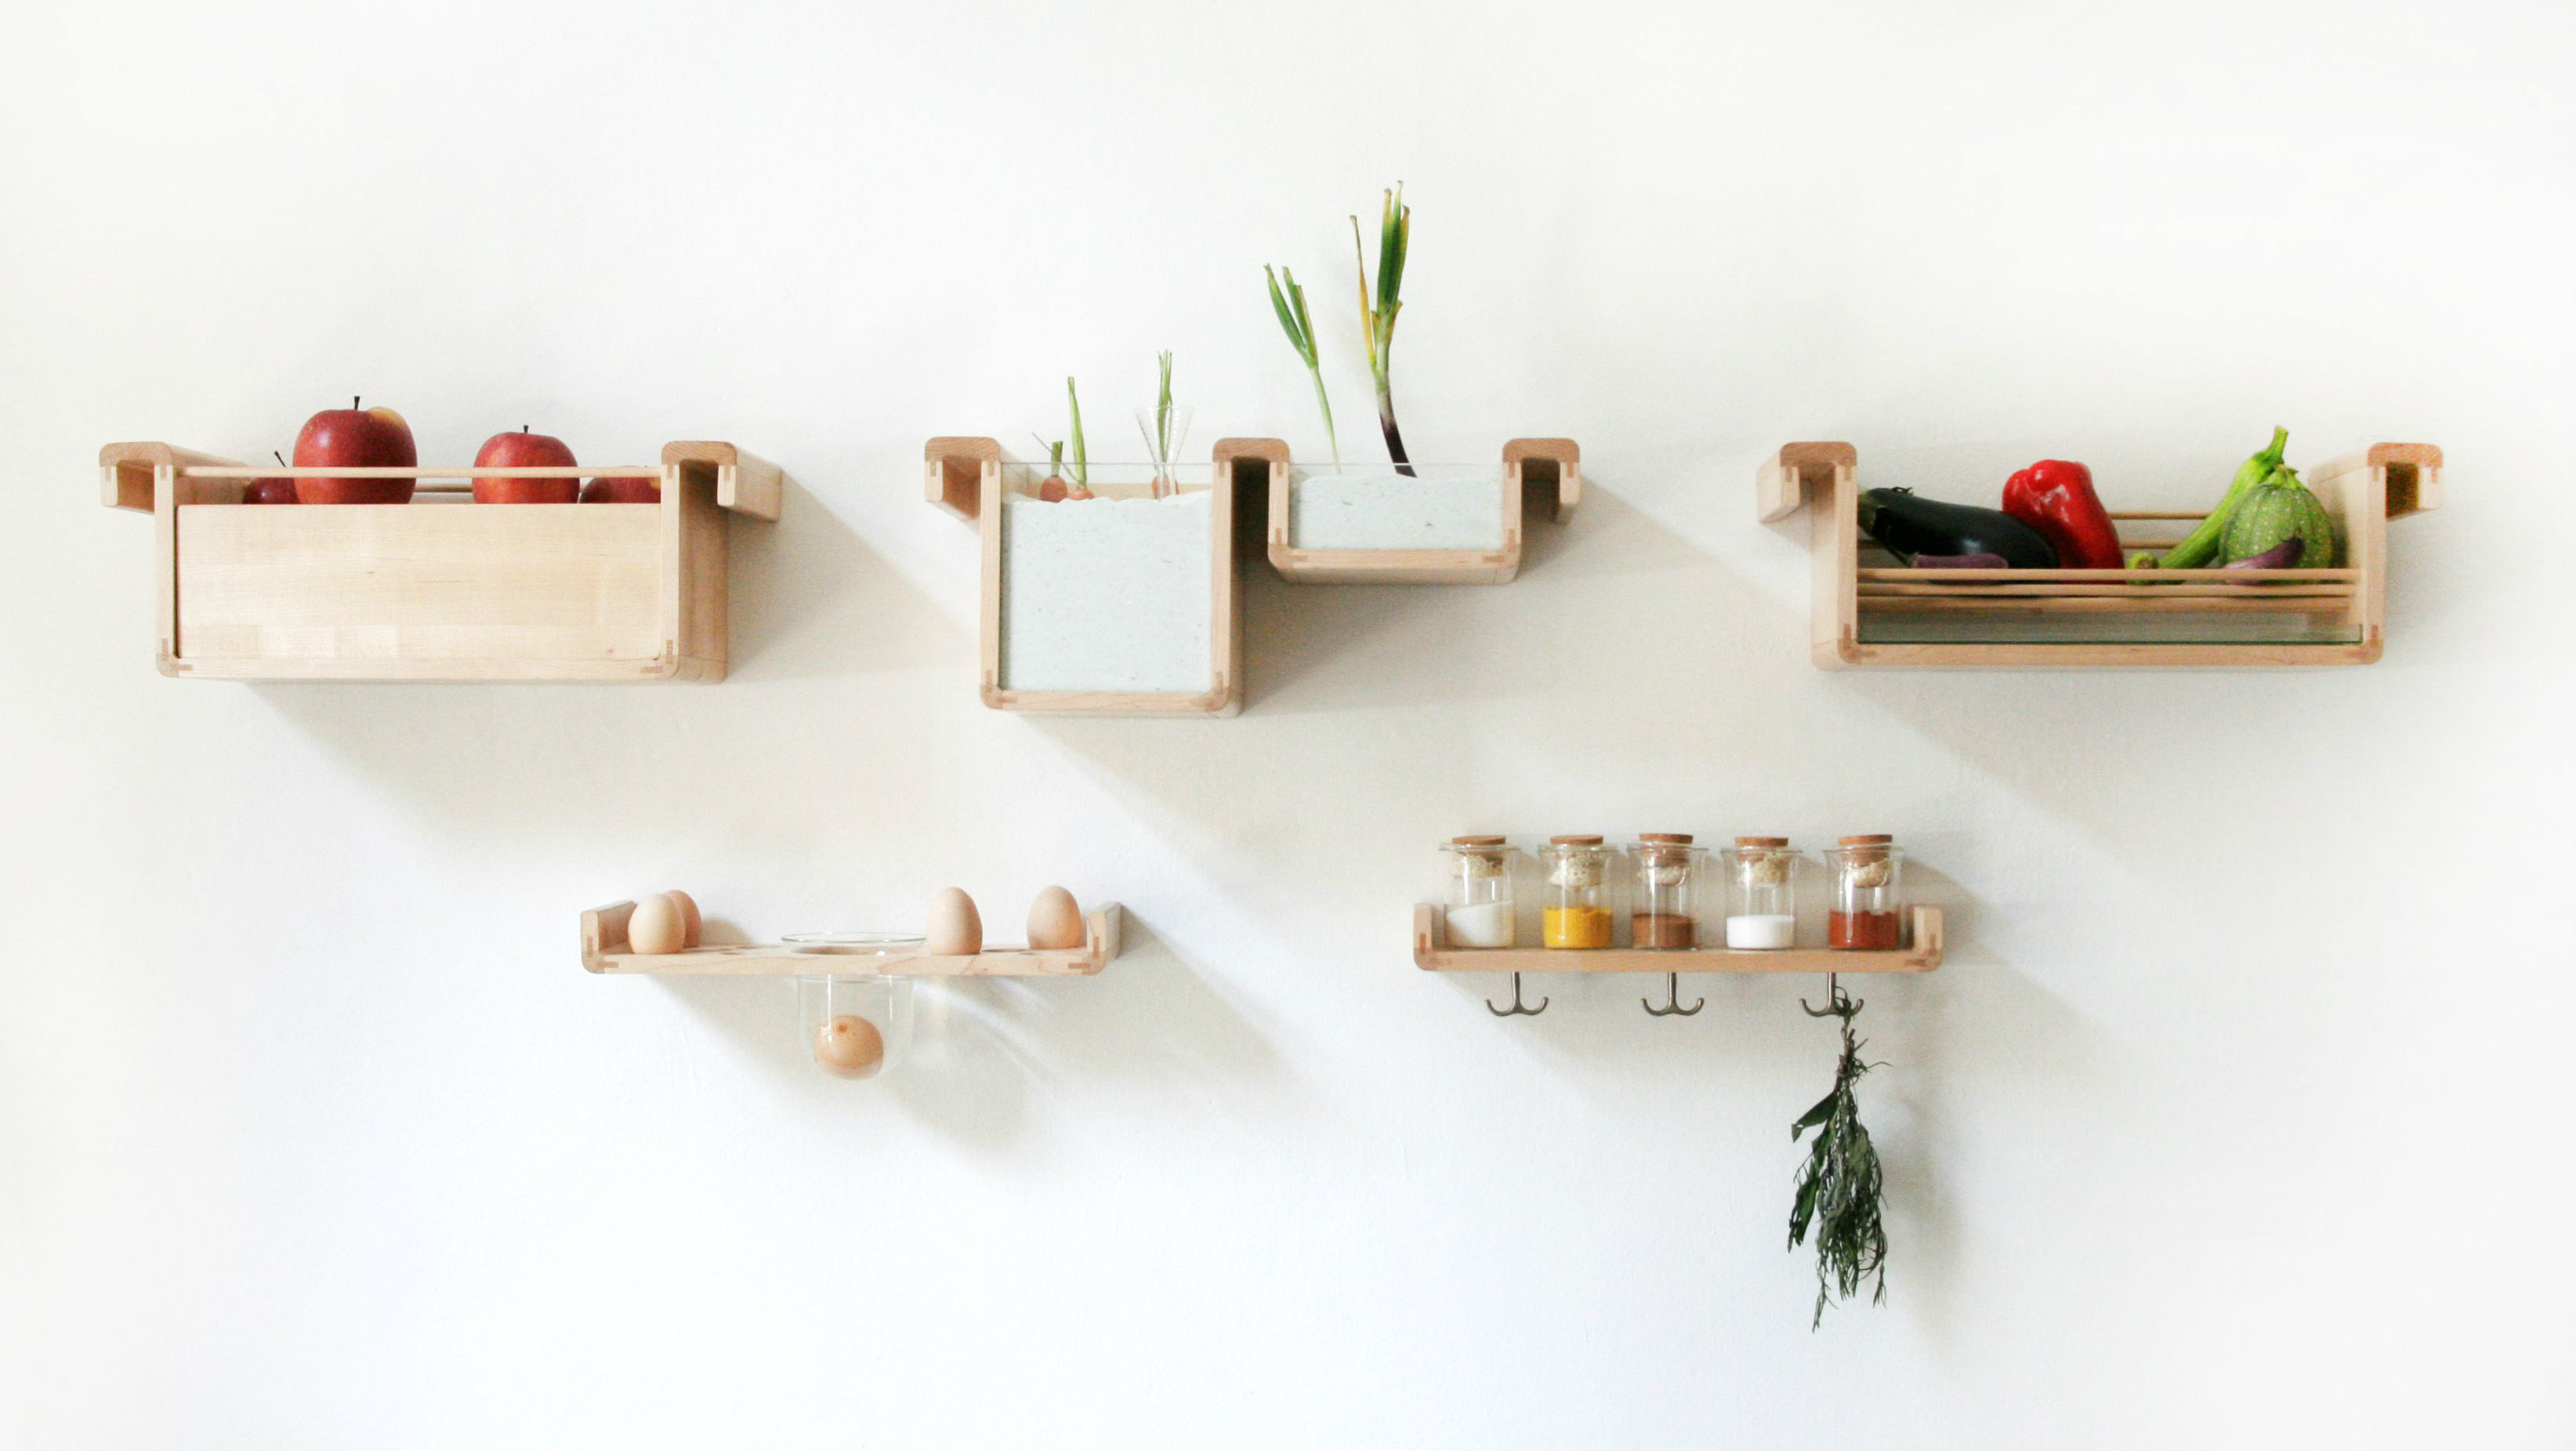 Save Food From the Fridge project. Jihyun Ryou and David Artuffo.